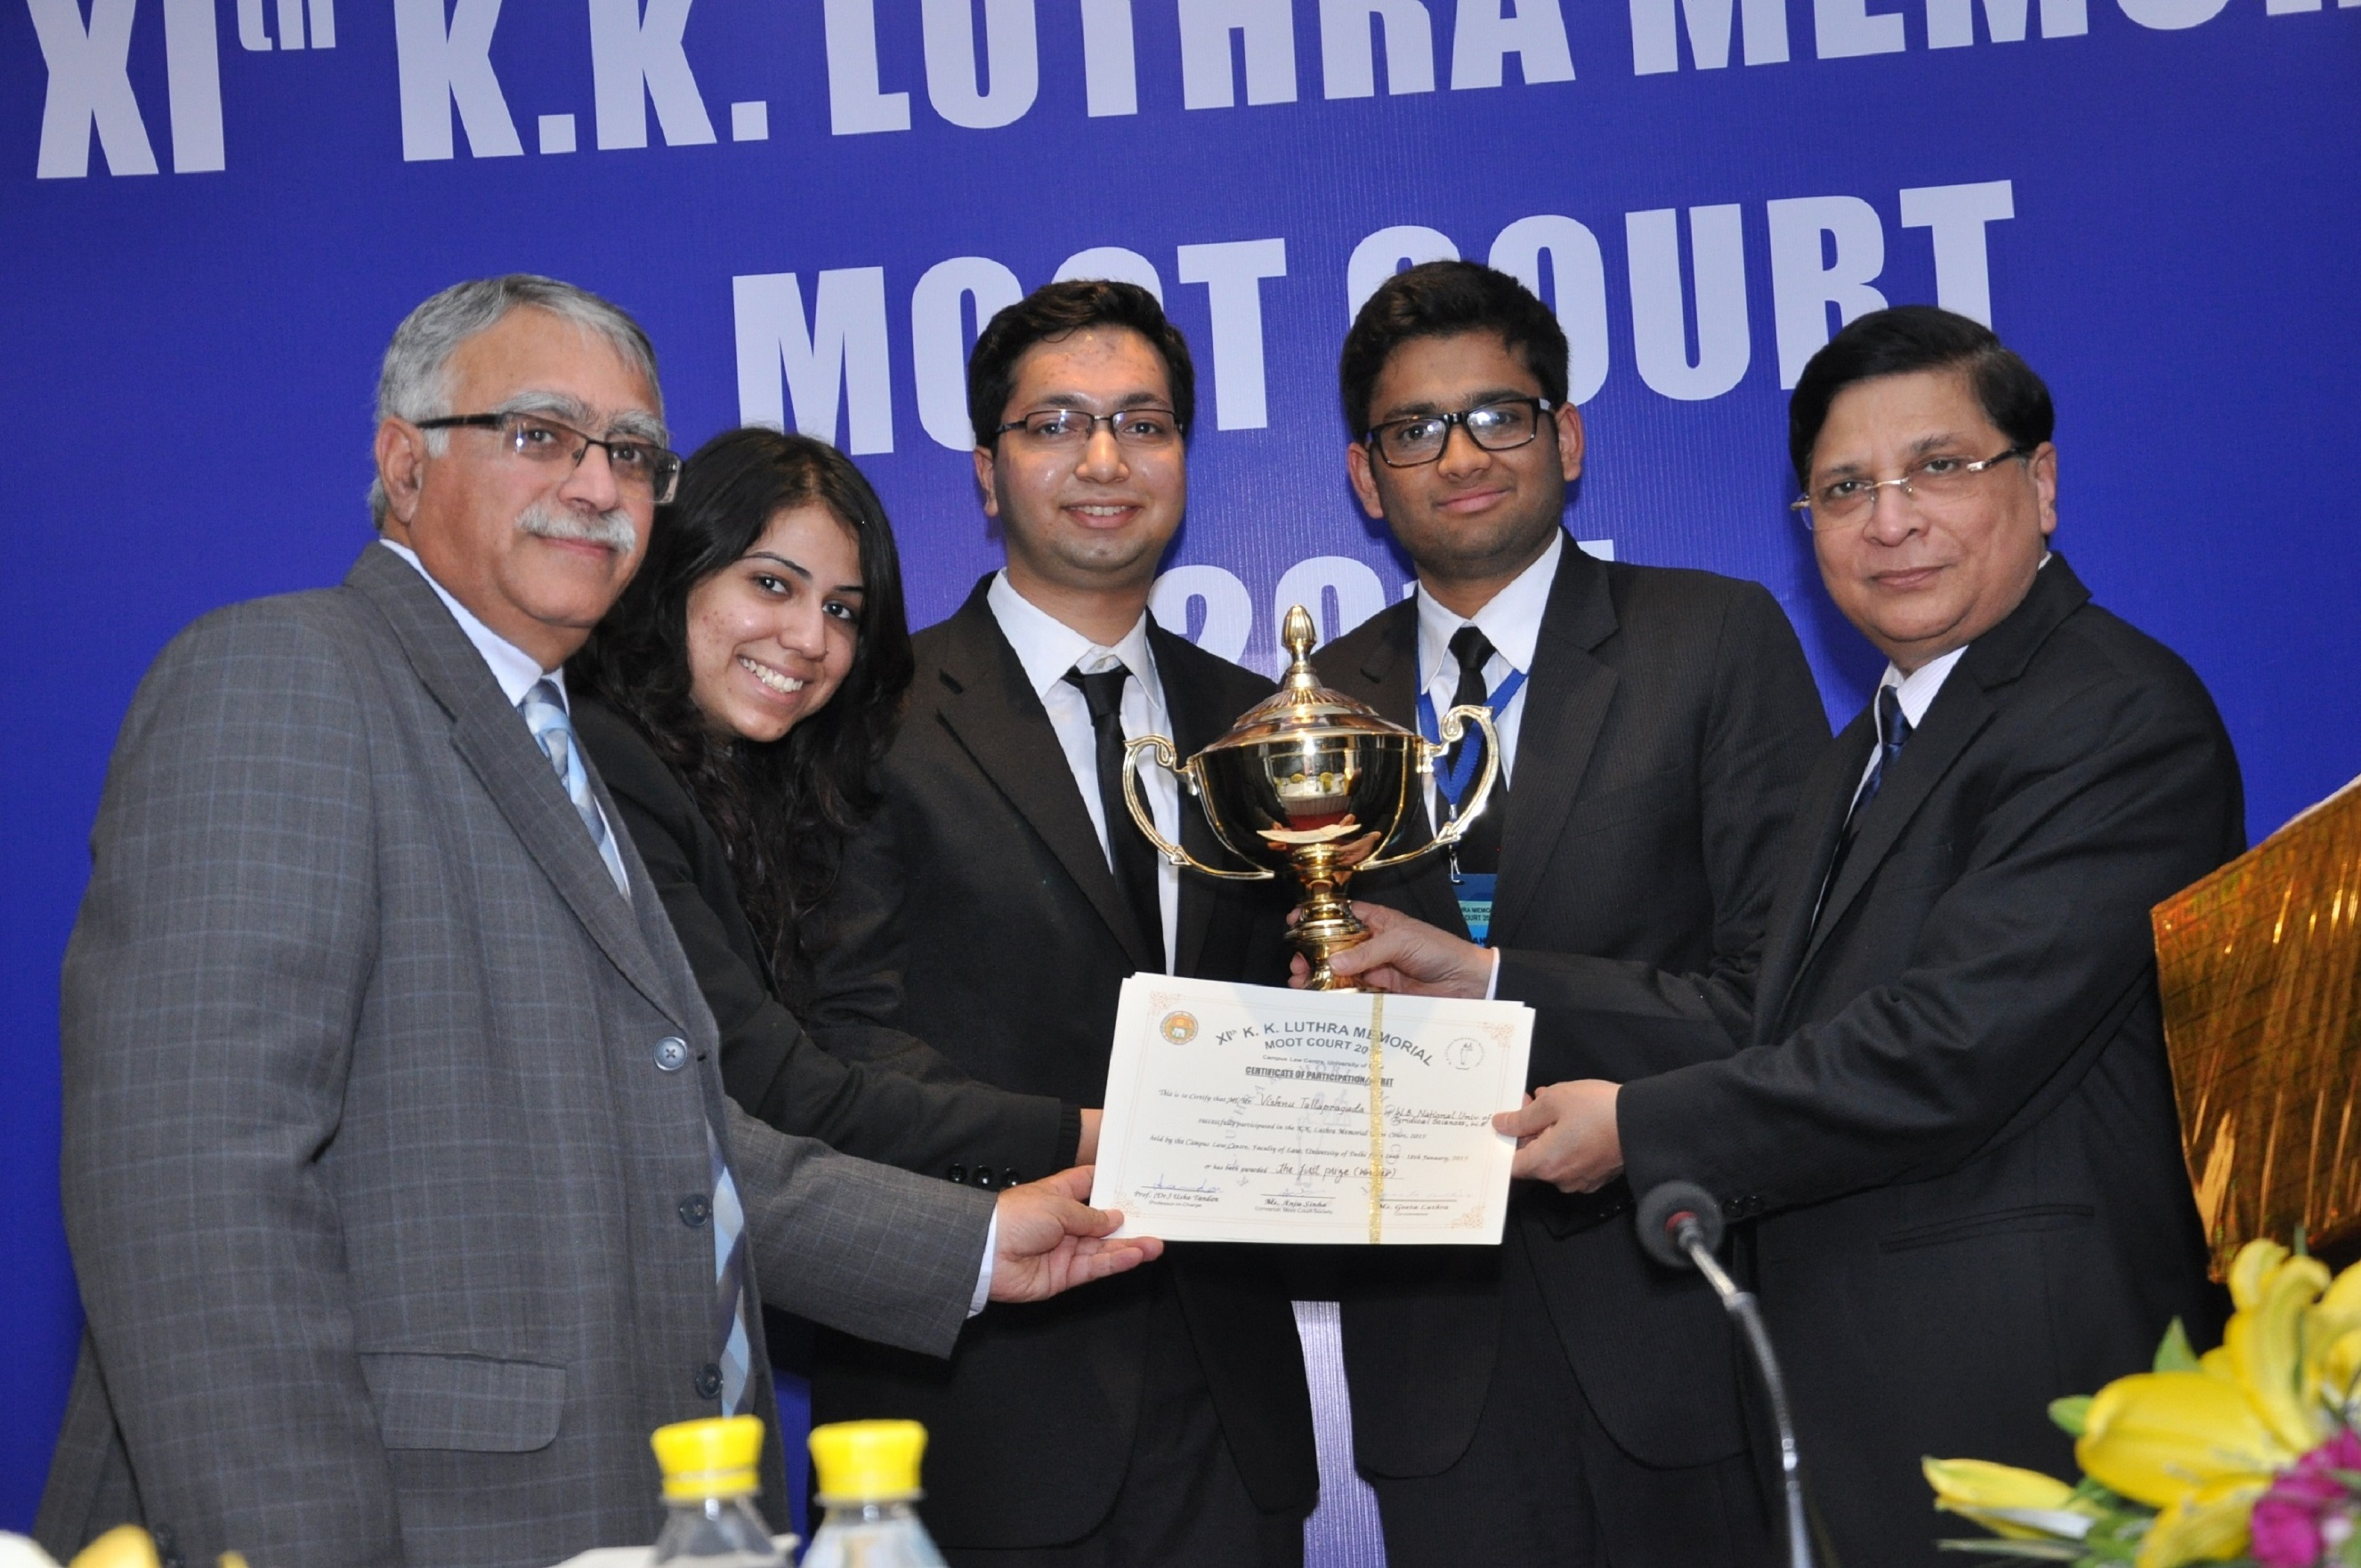 nujs team interview winners of kk luthra moot court competition, moot court tips, moot advice, how to prepare for a moot